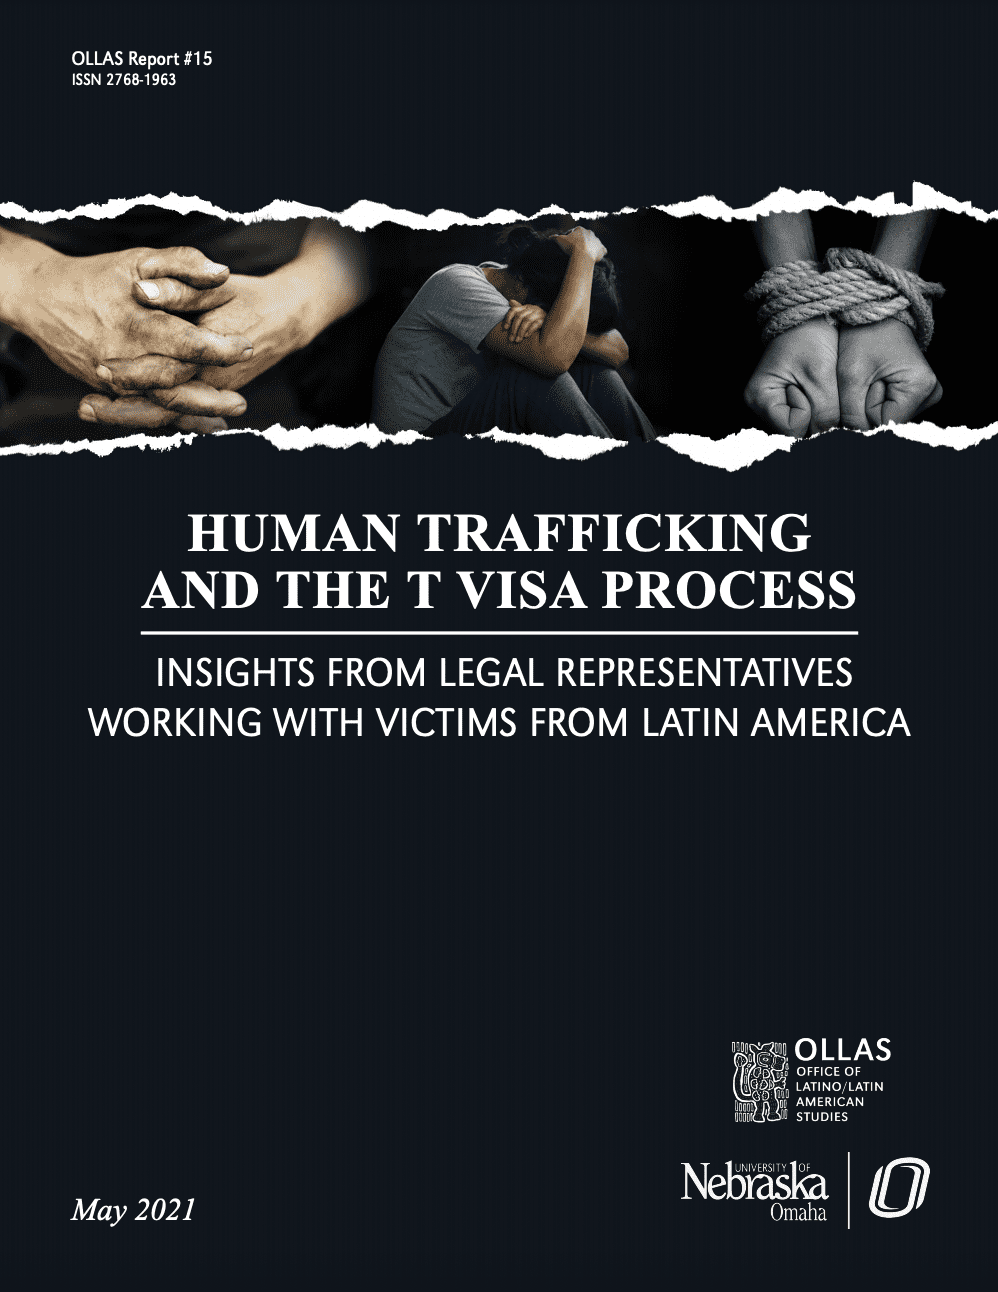 Human Trafficking and the T Visa Process: Insights from Legal Representatives Working with Victims from Latin America